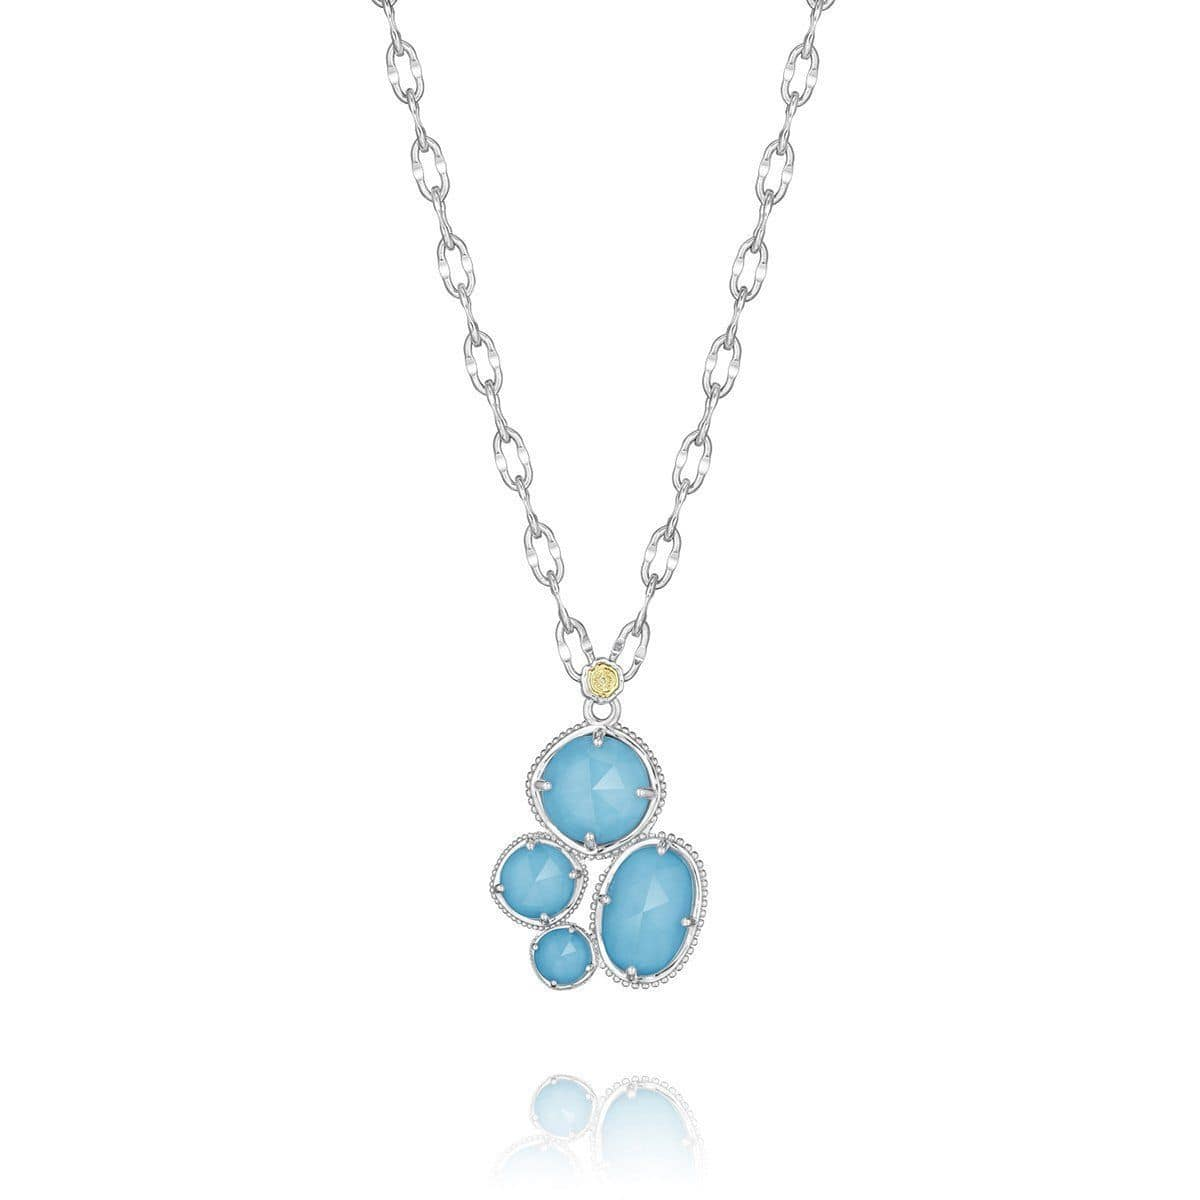 Quartz Over Neolite Turquoise Circle Necklace - SN14405